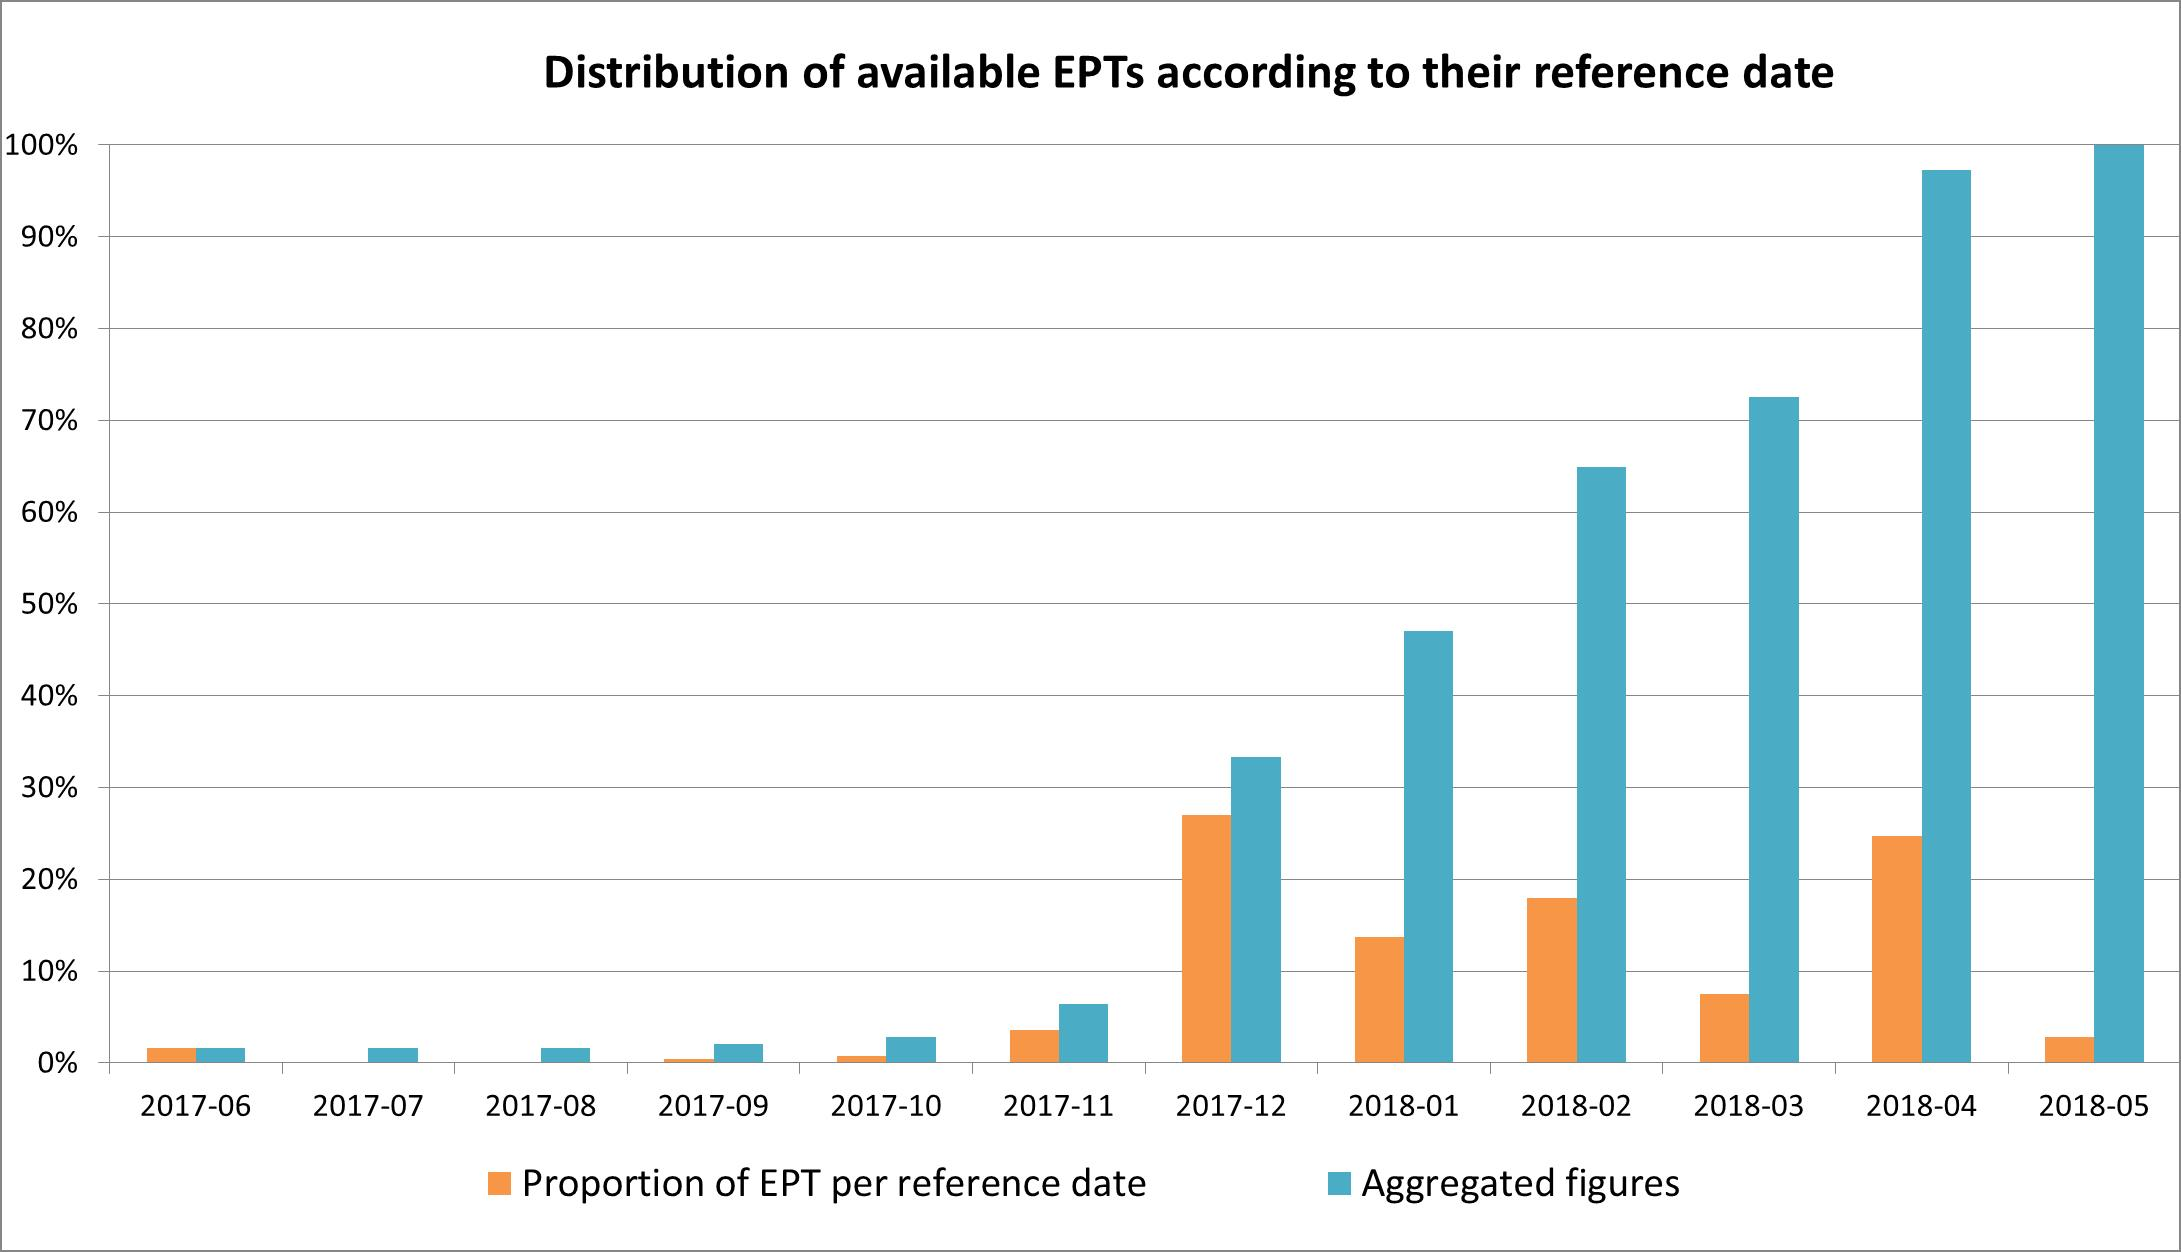 Distribution of EPTs per reference date